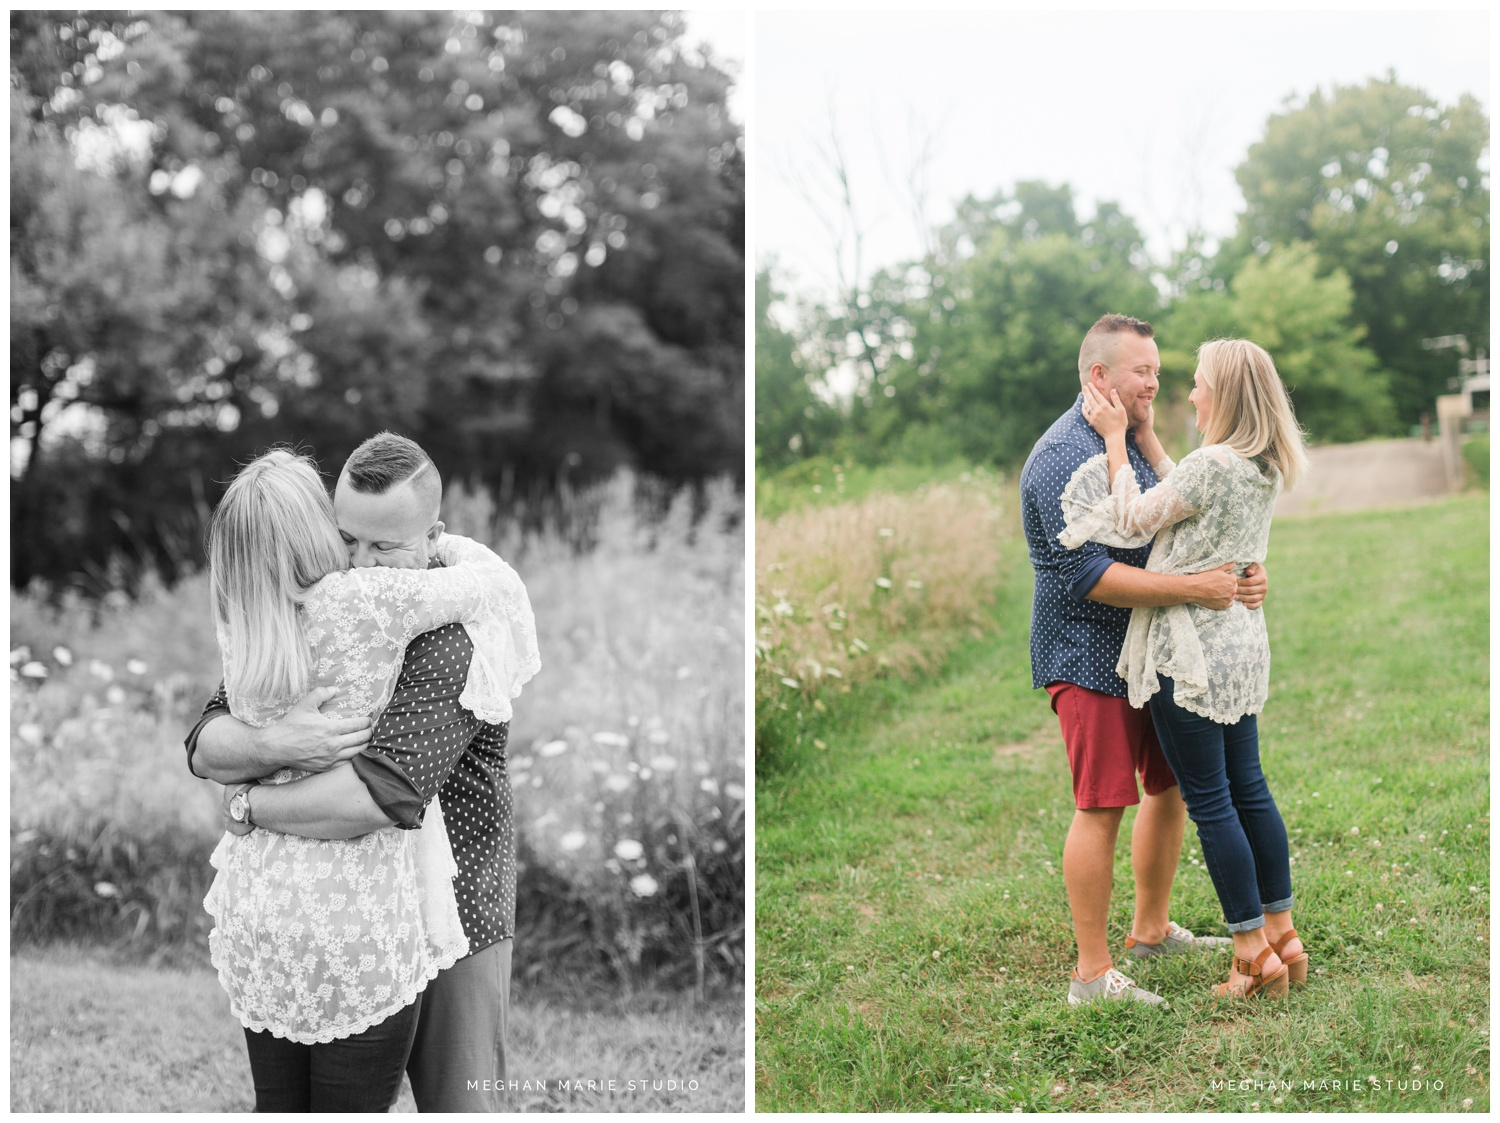 meghan marie studio ohio dayton troy photographer wedding photography engagement alex kaila family honeycreek preserve champagne downtown courthouse urban rural earth toned nature woods barn country city stone fountain elegant_0470.jpg